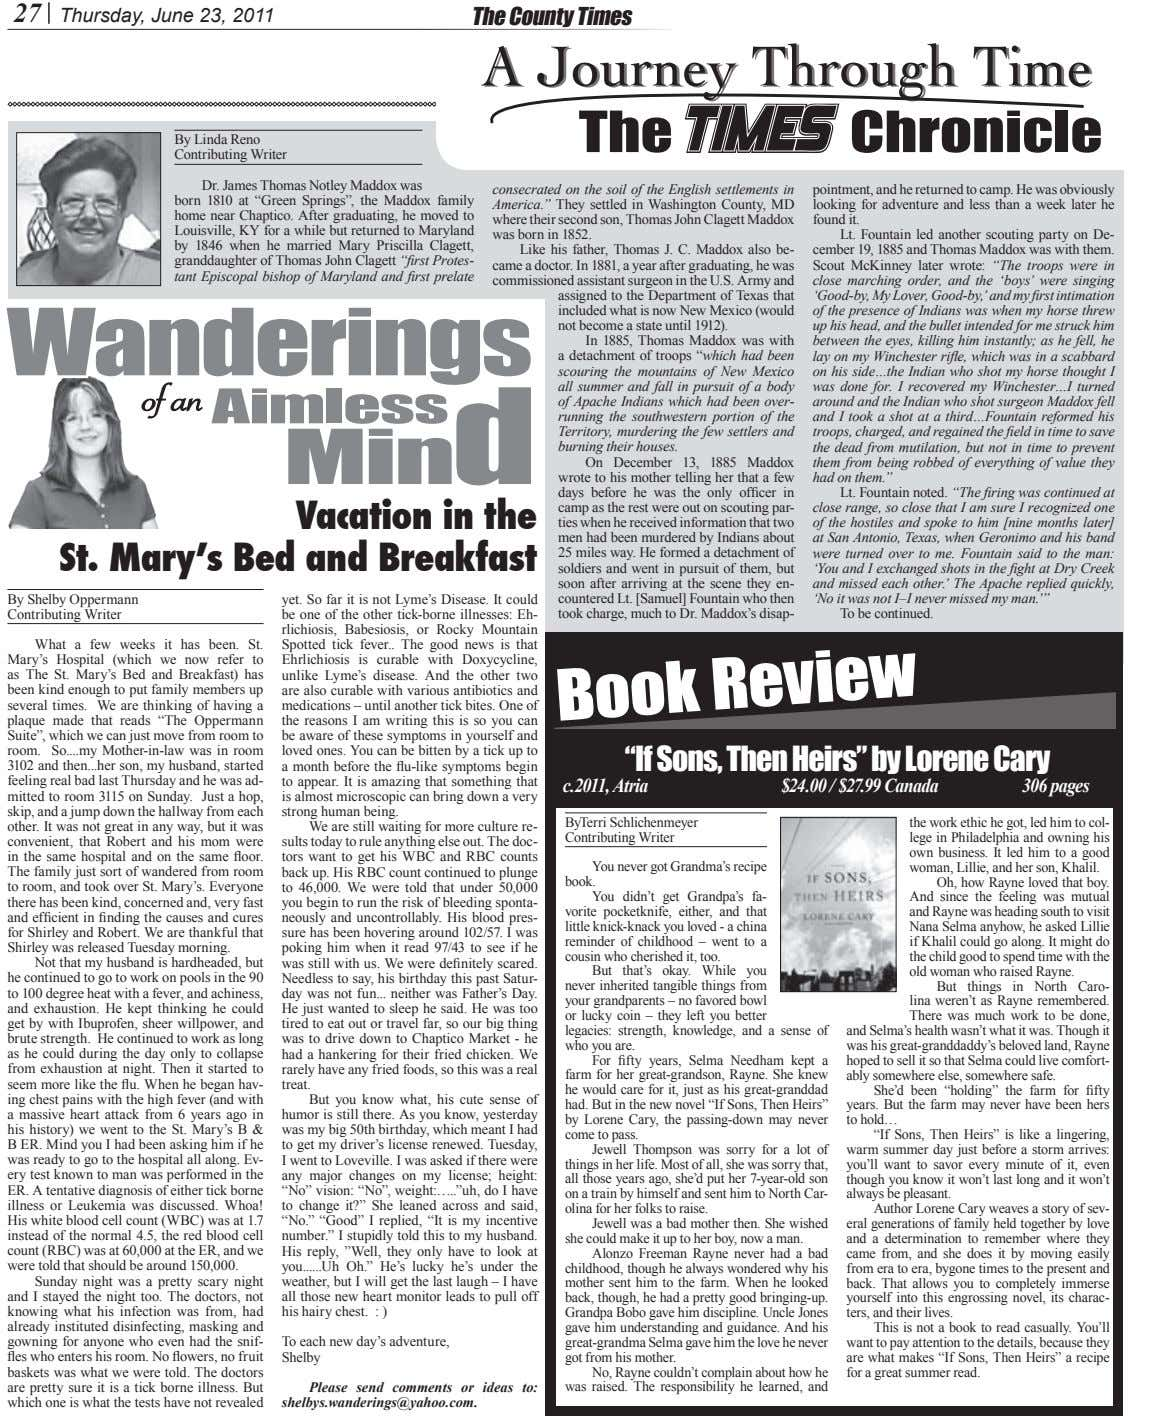 27 Thursday, June 23, 2011 The County Times AA JourneyJourney ThroughThrough TimeTime The Chronicle By